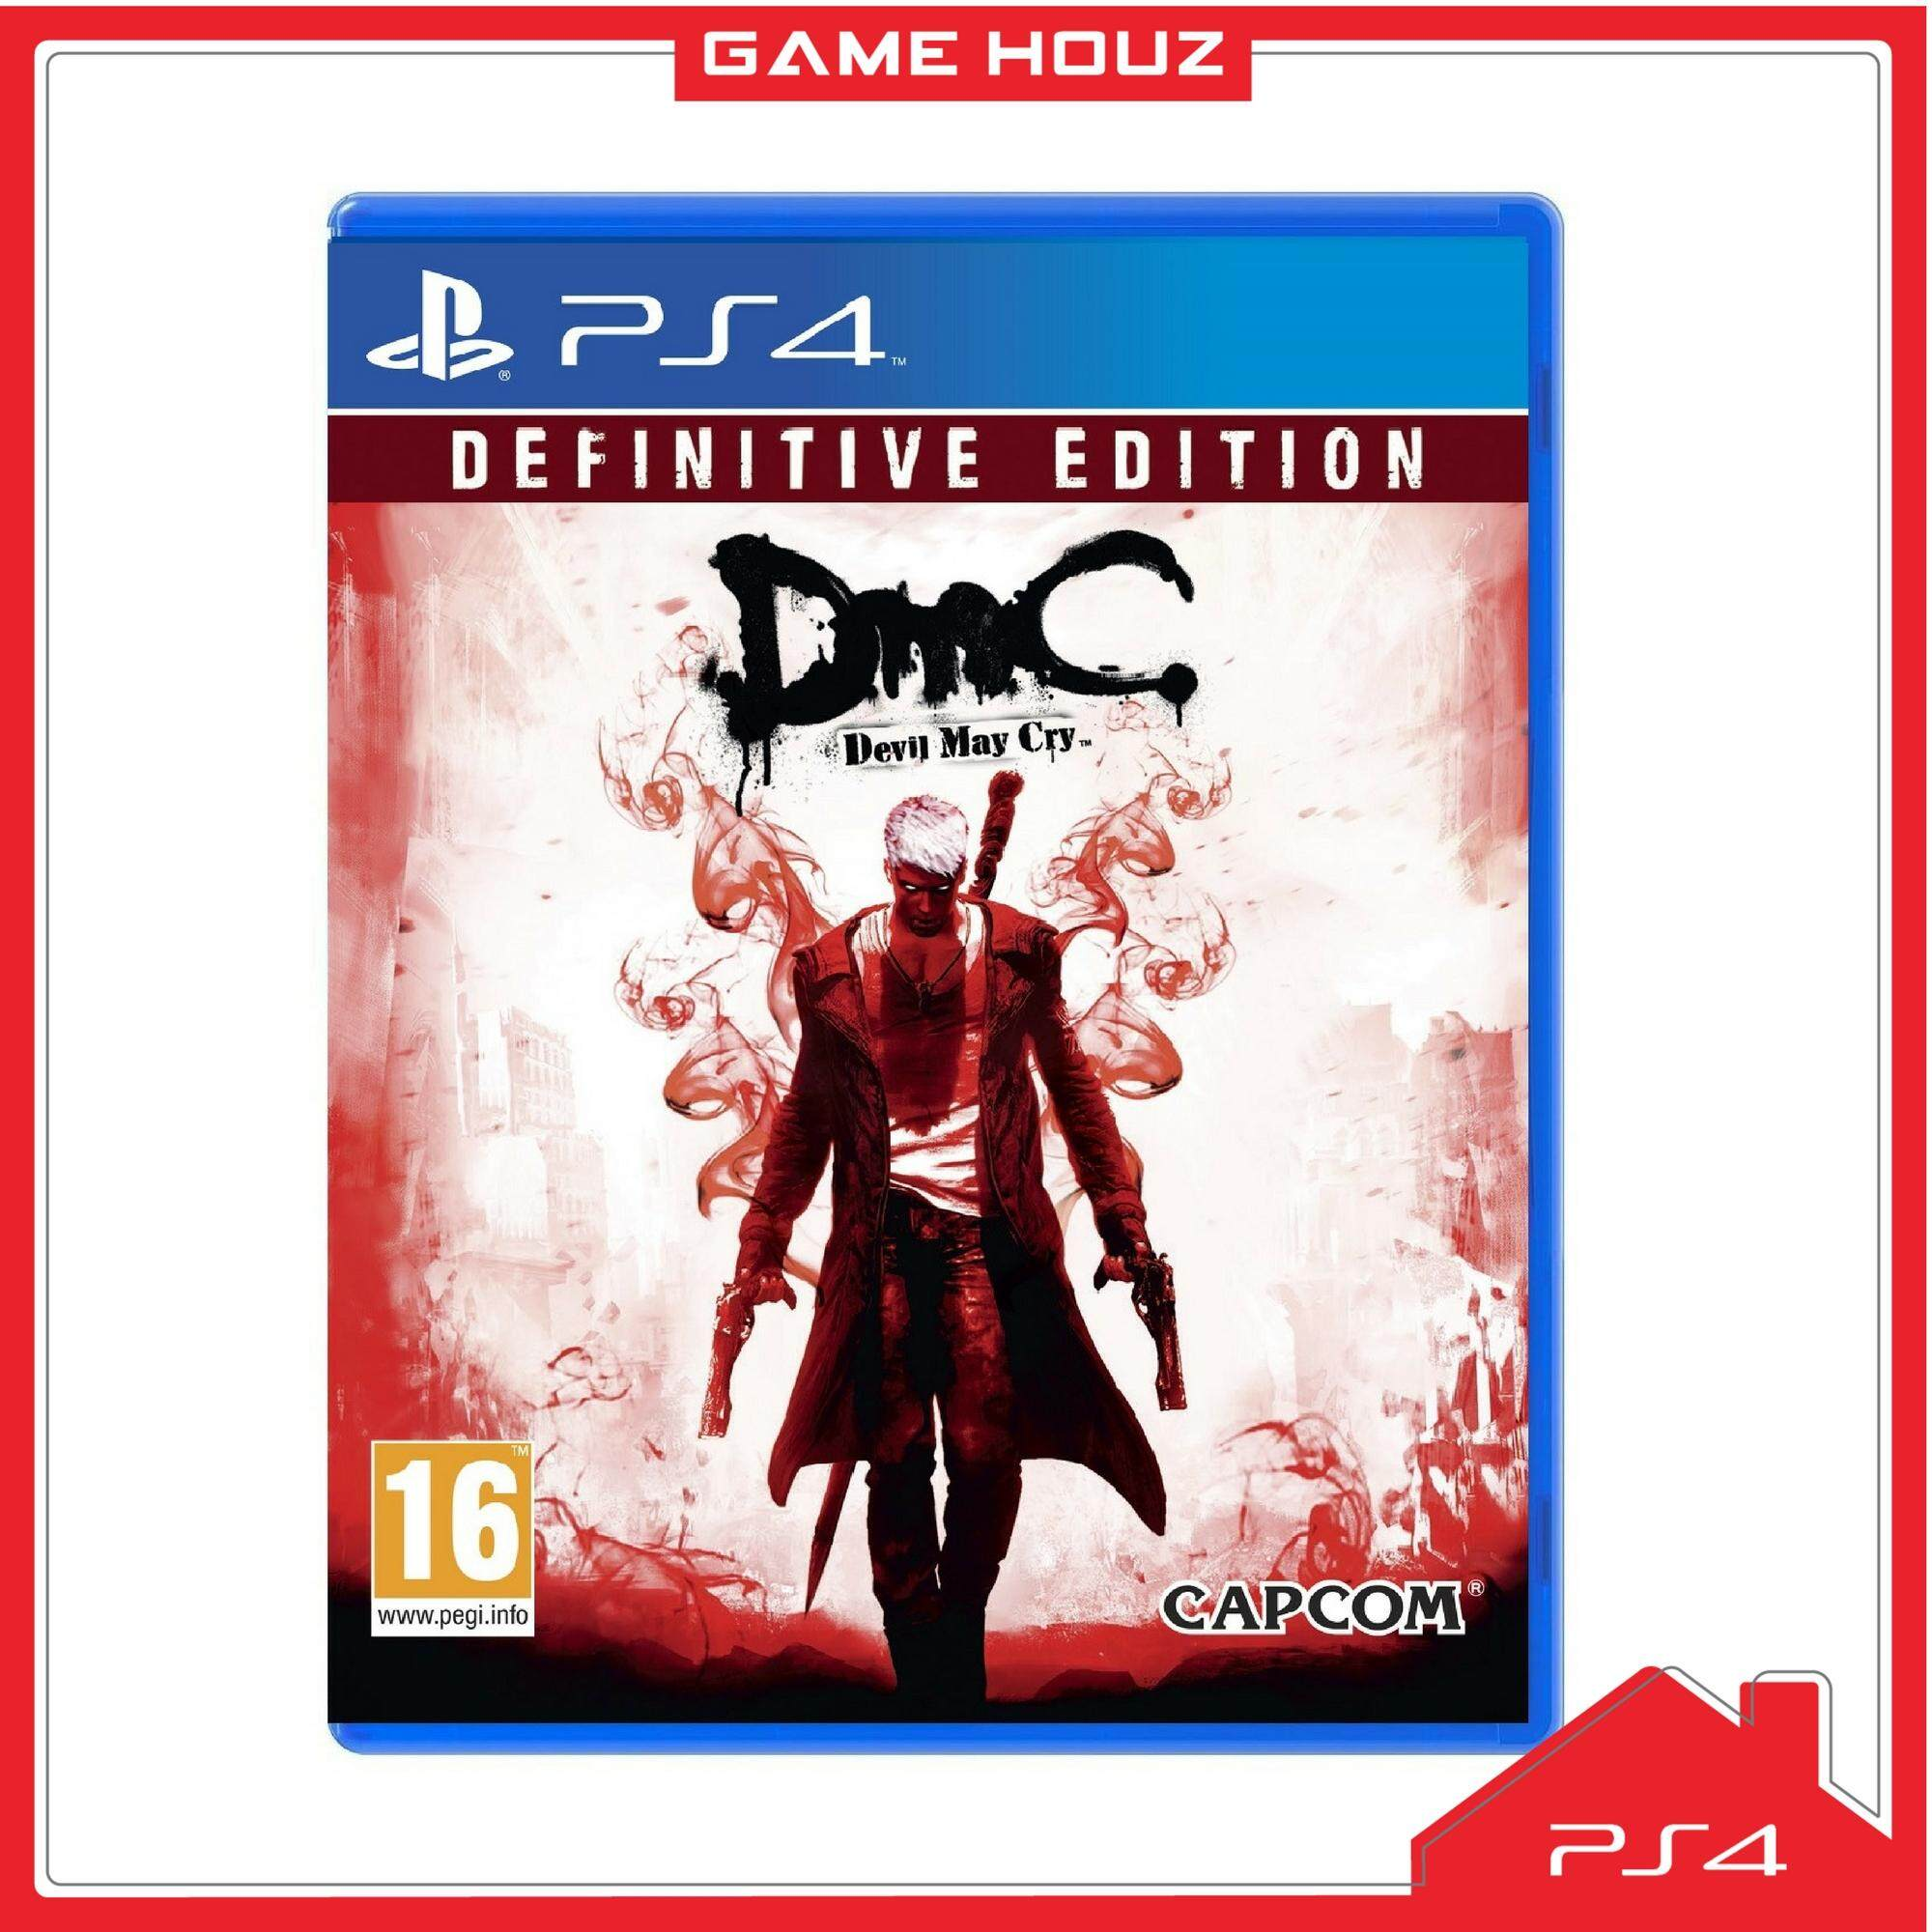 Capcom Games Buy Game On Lazada Malaysia Free Shipping Switch Resident Evil Revelation English Us Ps4 Dmc Devil May Cry Definitive Edition R2 Eng